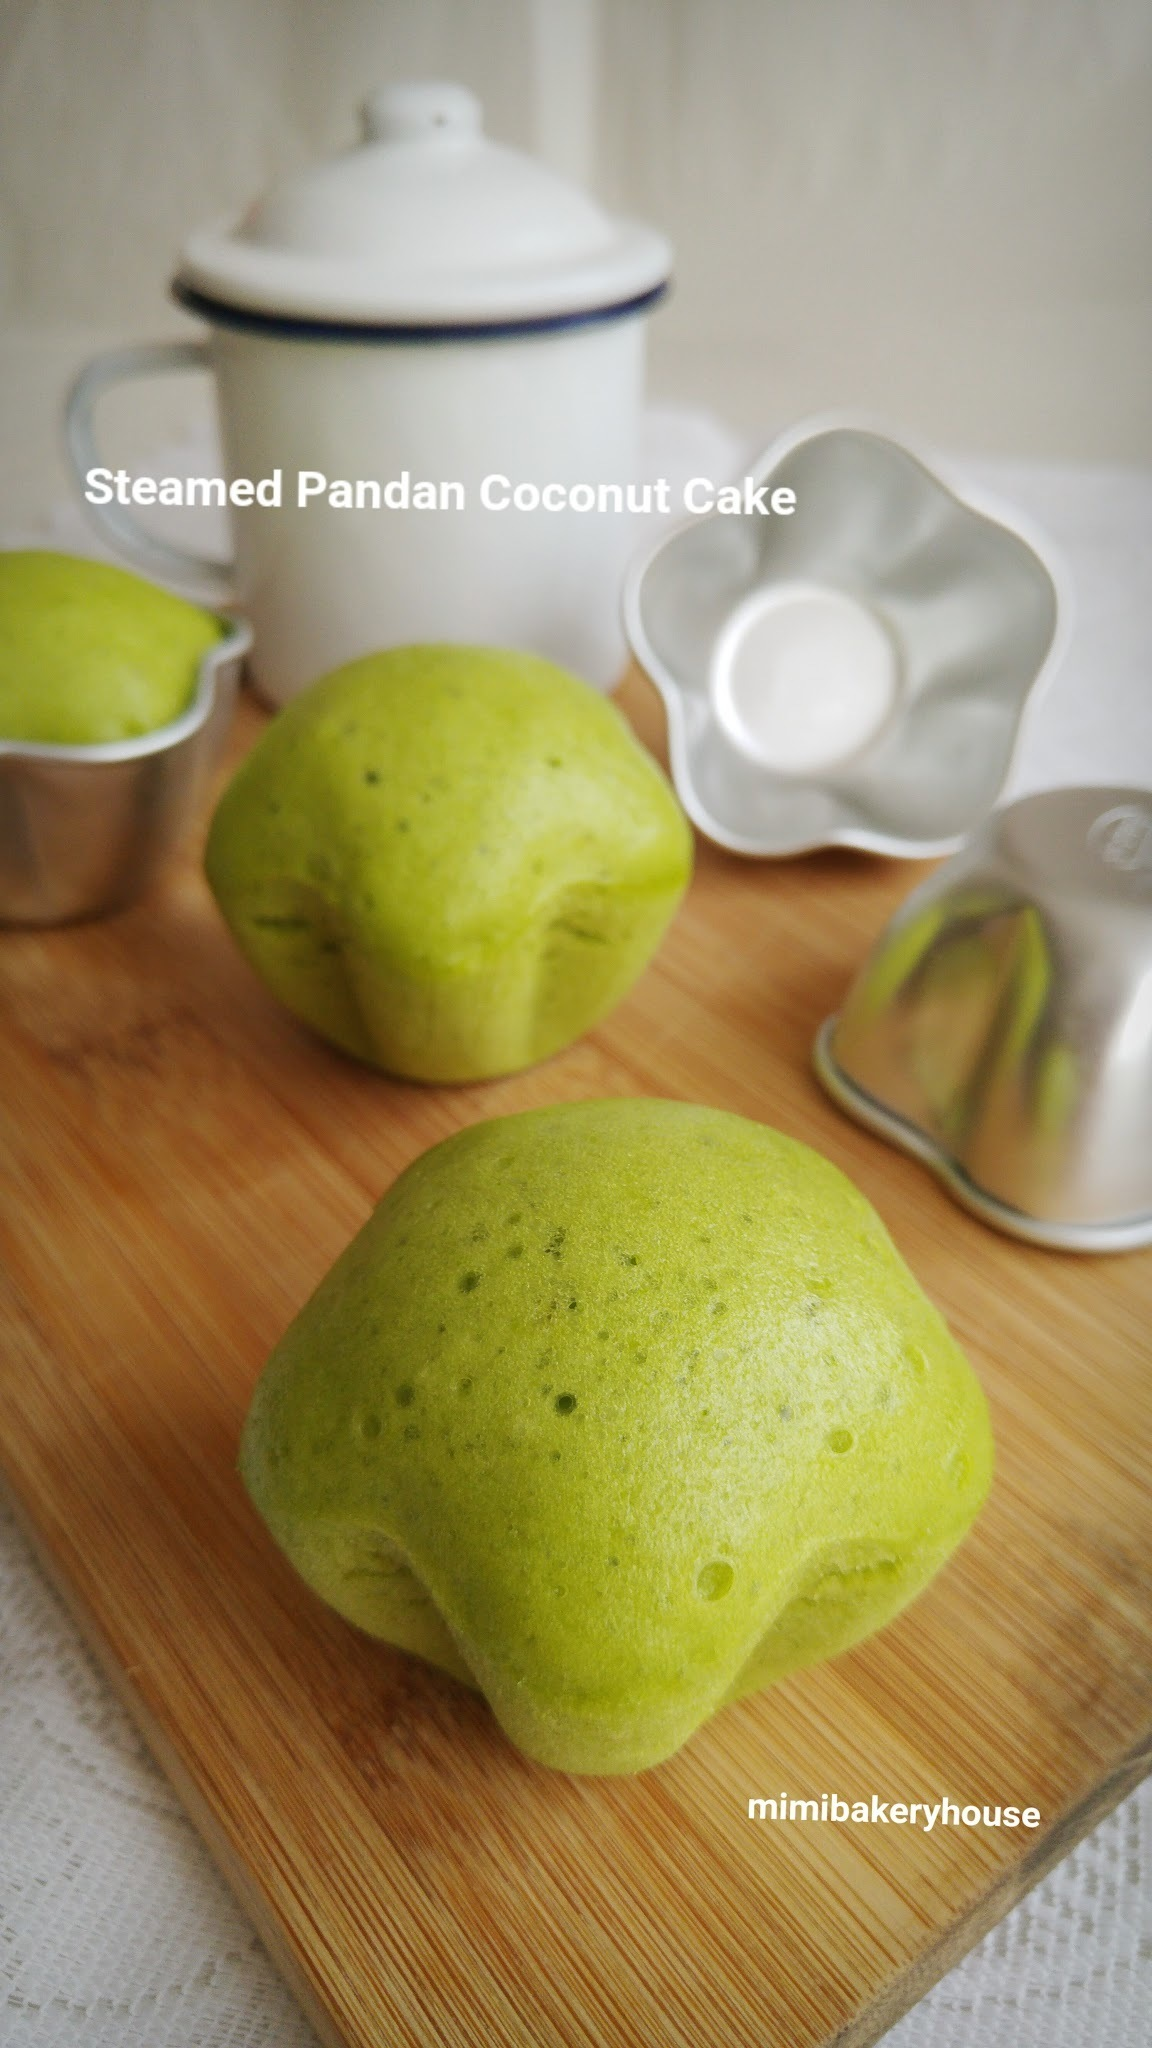 Feeling Green Today : Steamed Pandan Coconut Cake [25 Sep 2015]